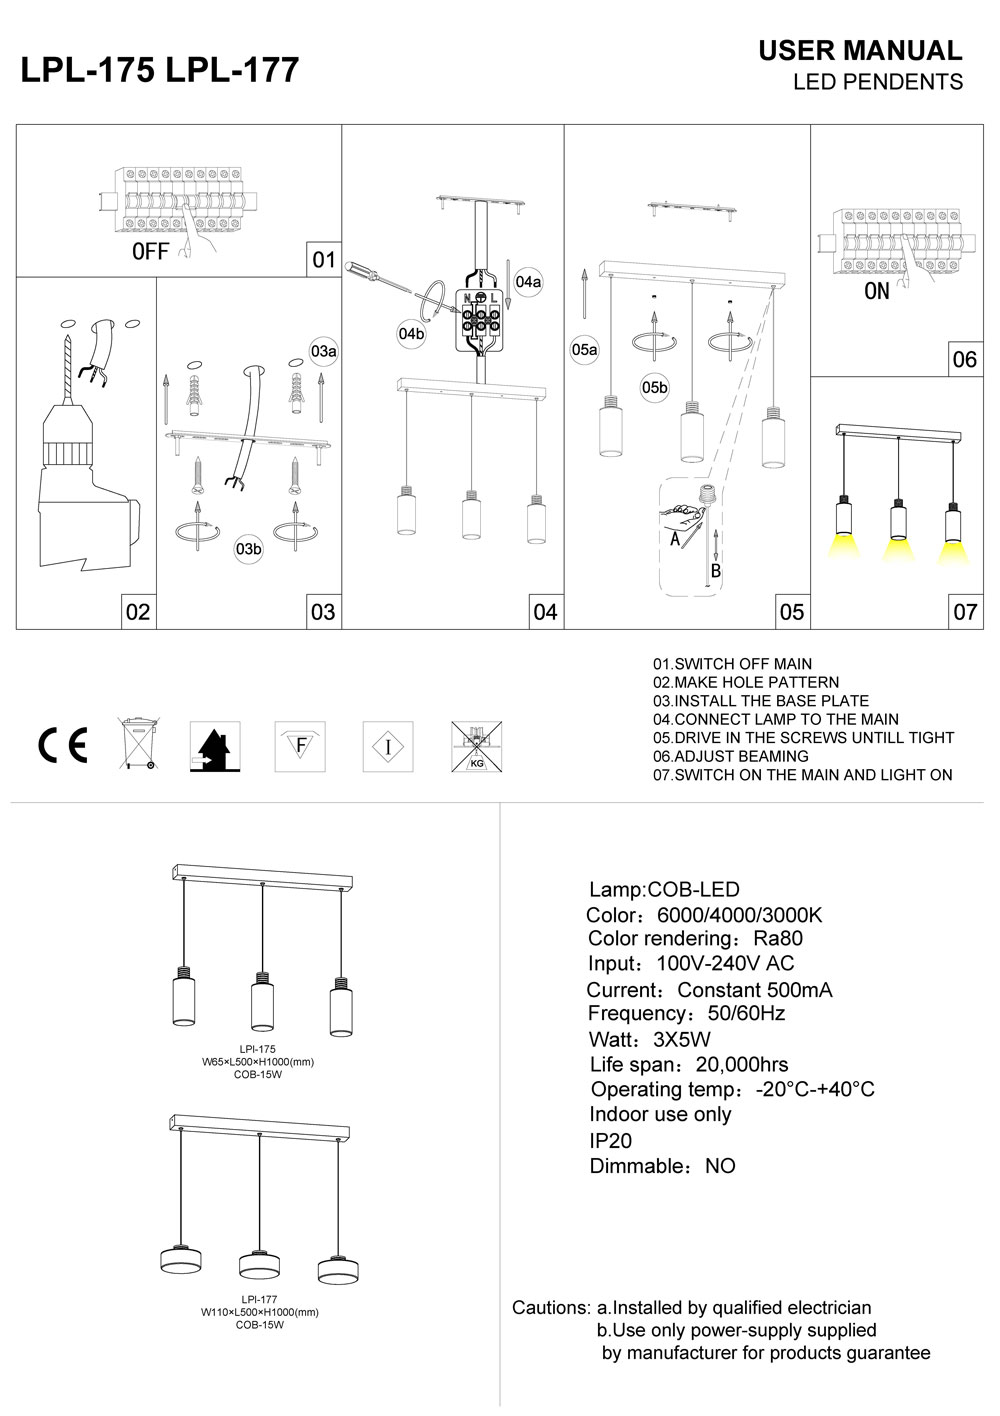 LPL-175-LPL- LED pendant light installation guide